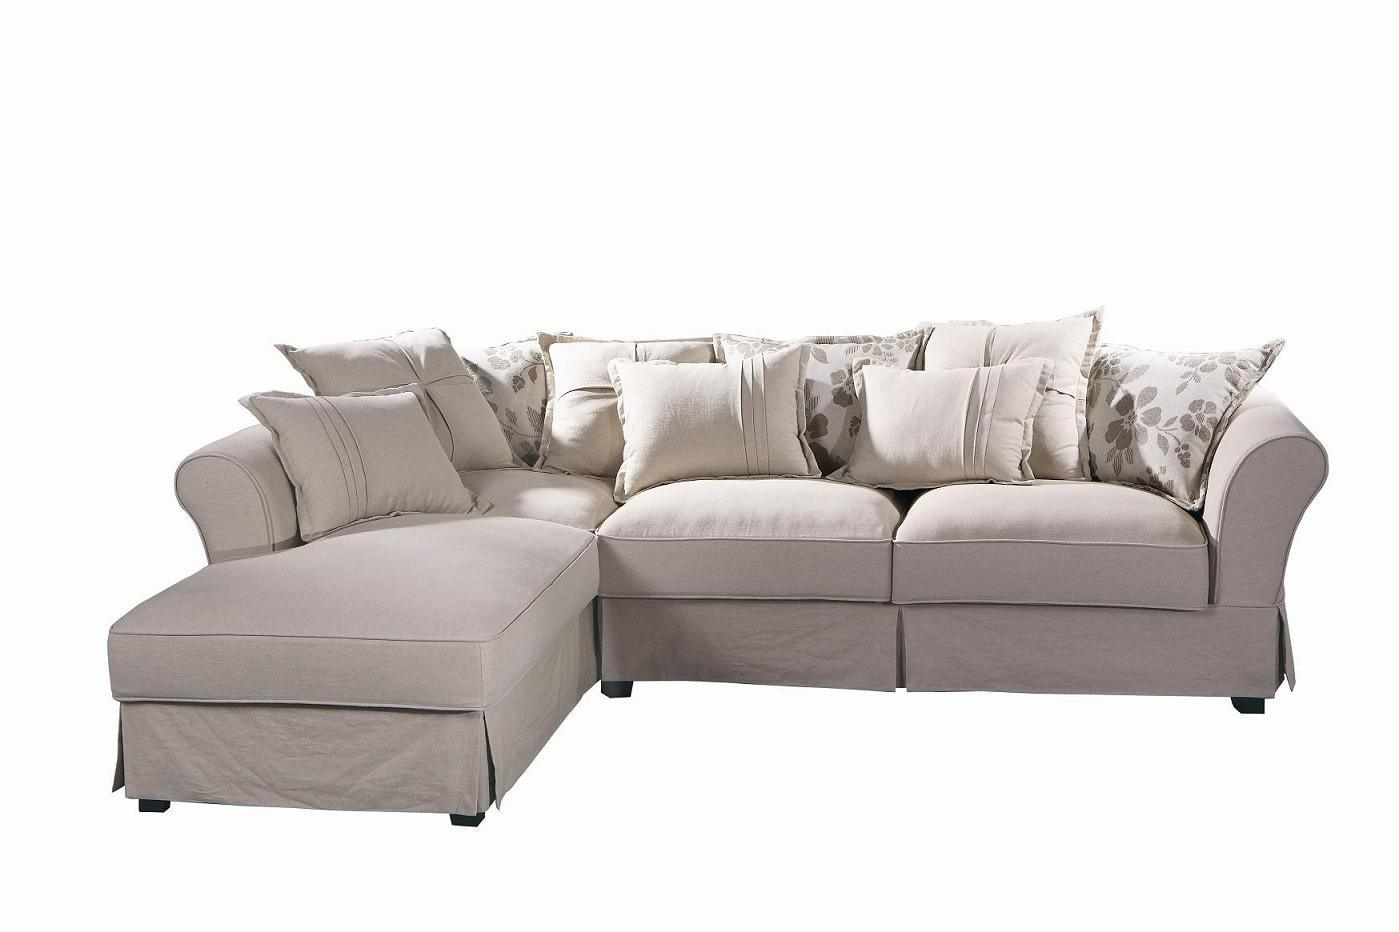 Discount sofa slipcovers cheap couch slipcovers at for Cheap sectional couch